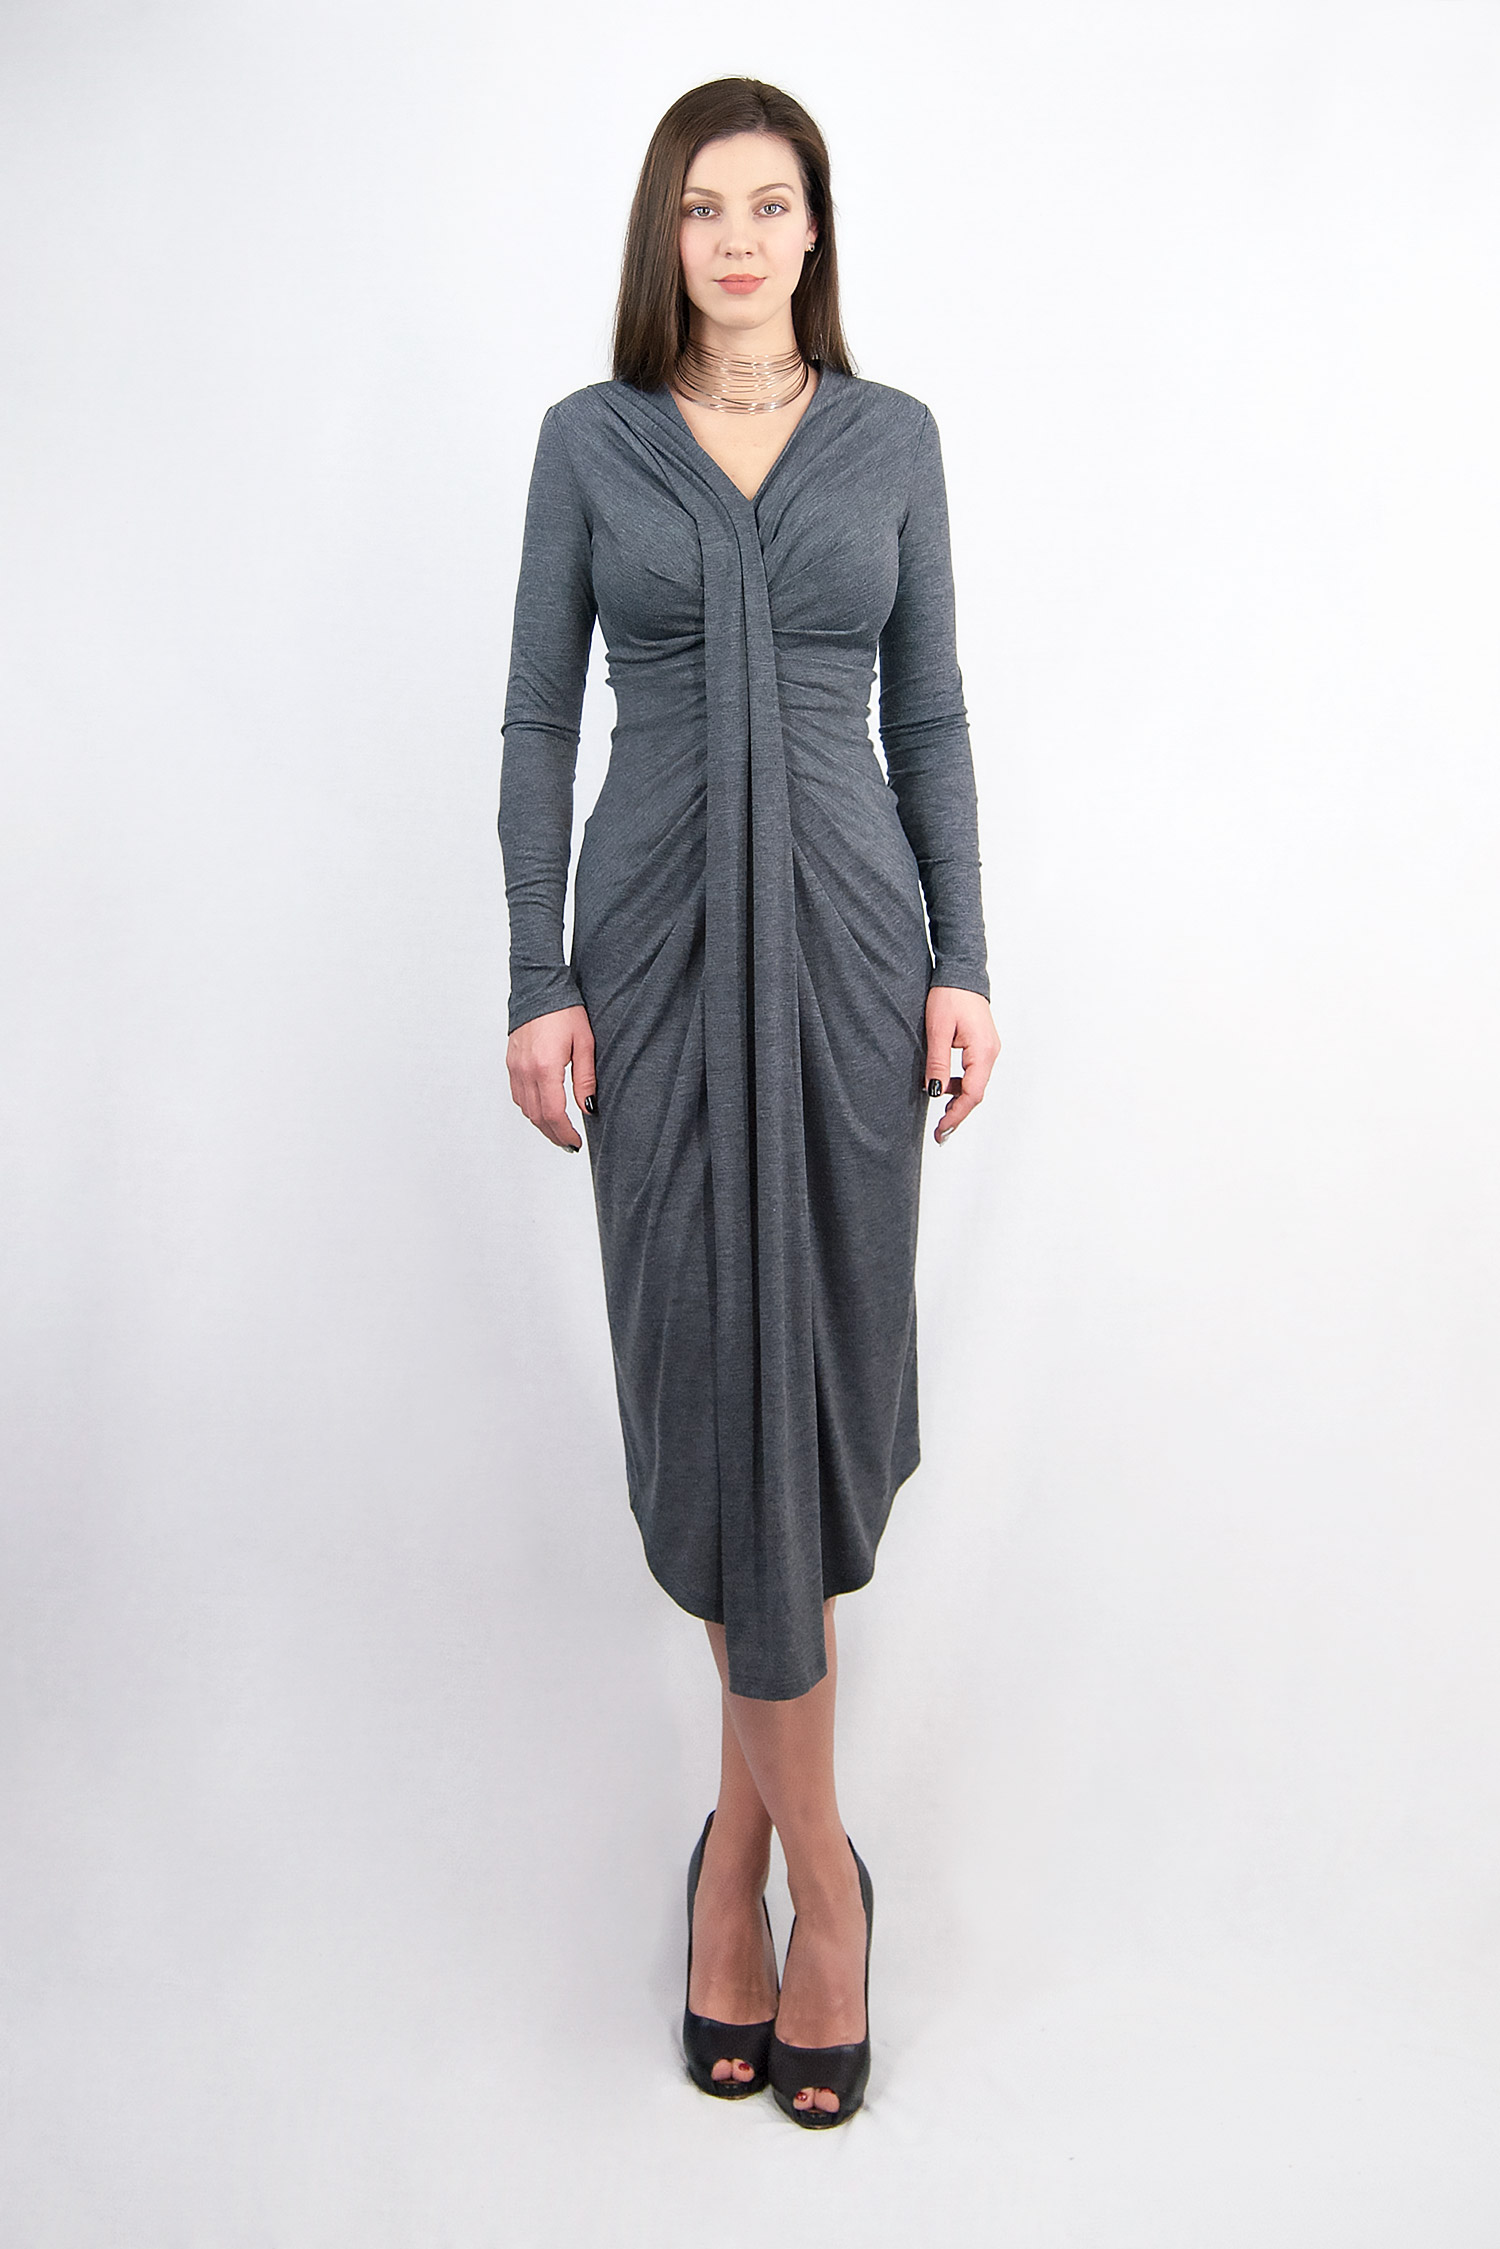 Gray dress with drapery in front